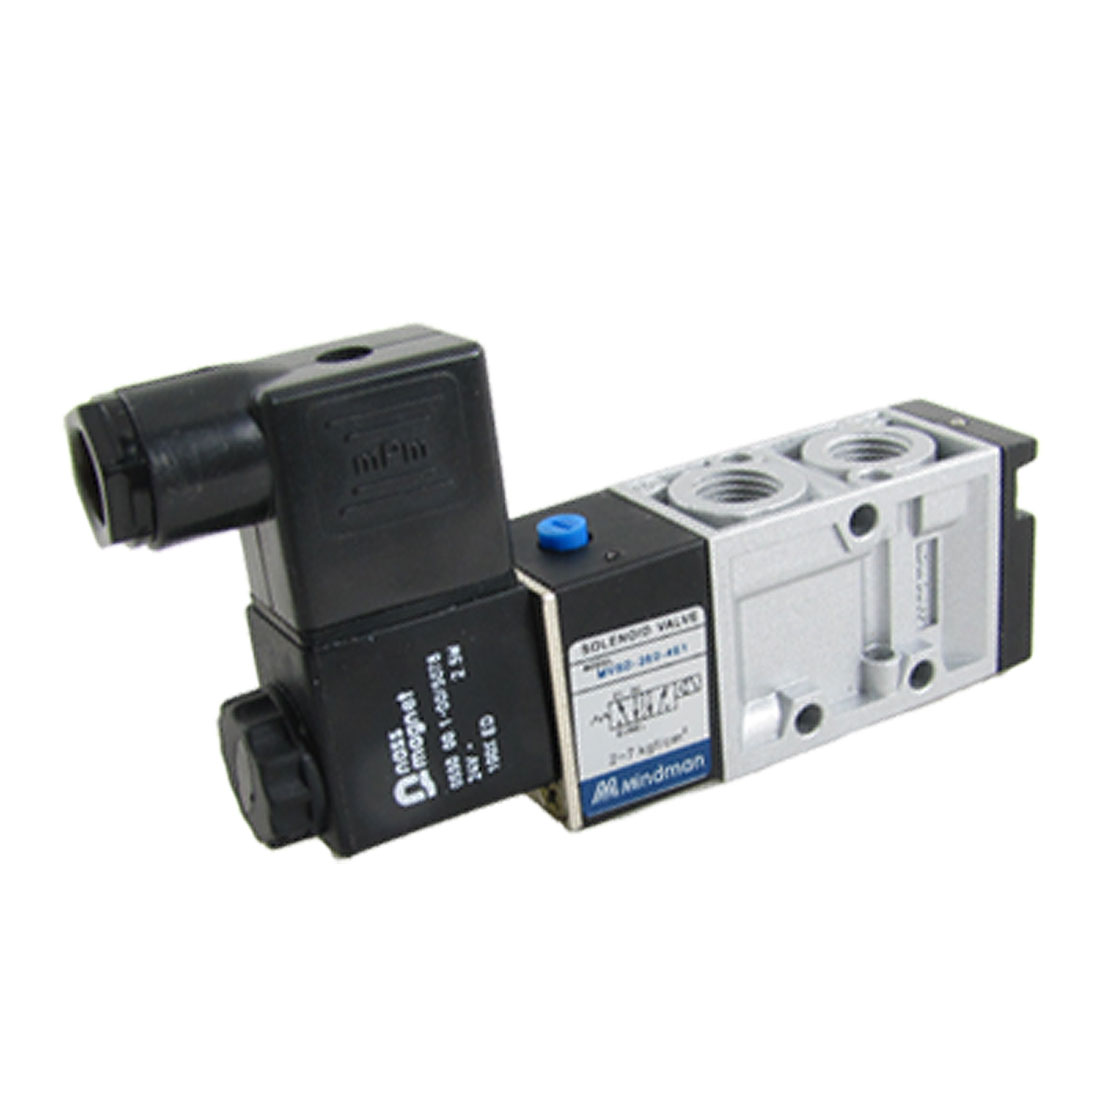 MVSD-260-4EI 2 Position 5 Way Electromagnetic Valve